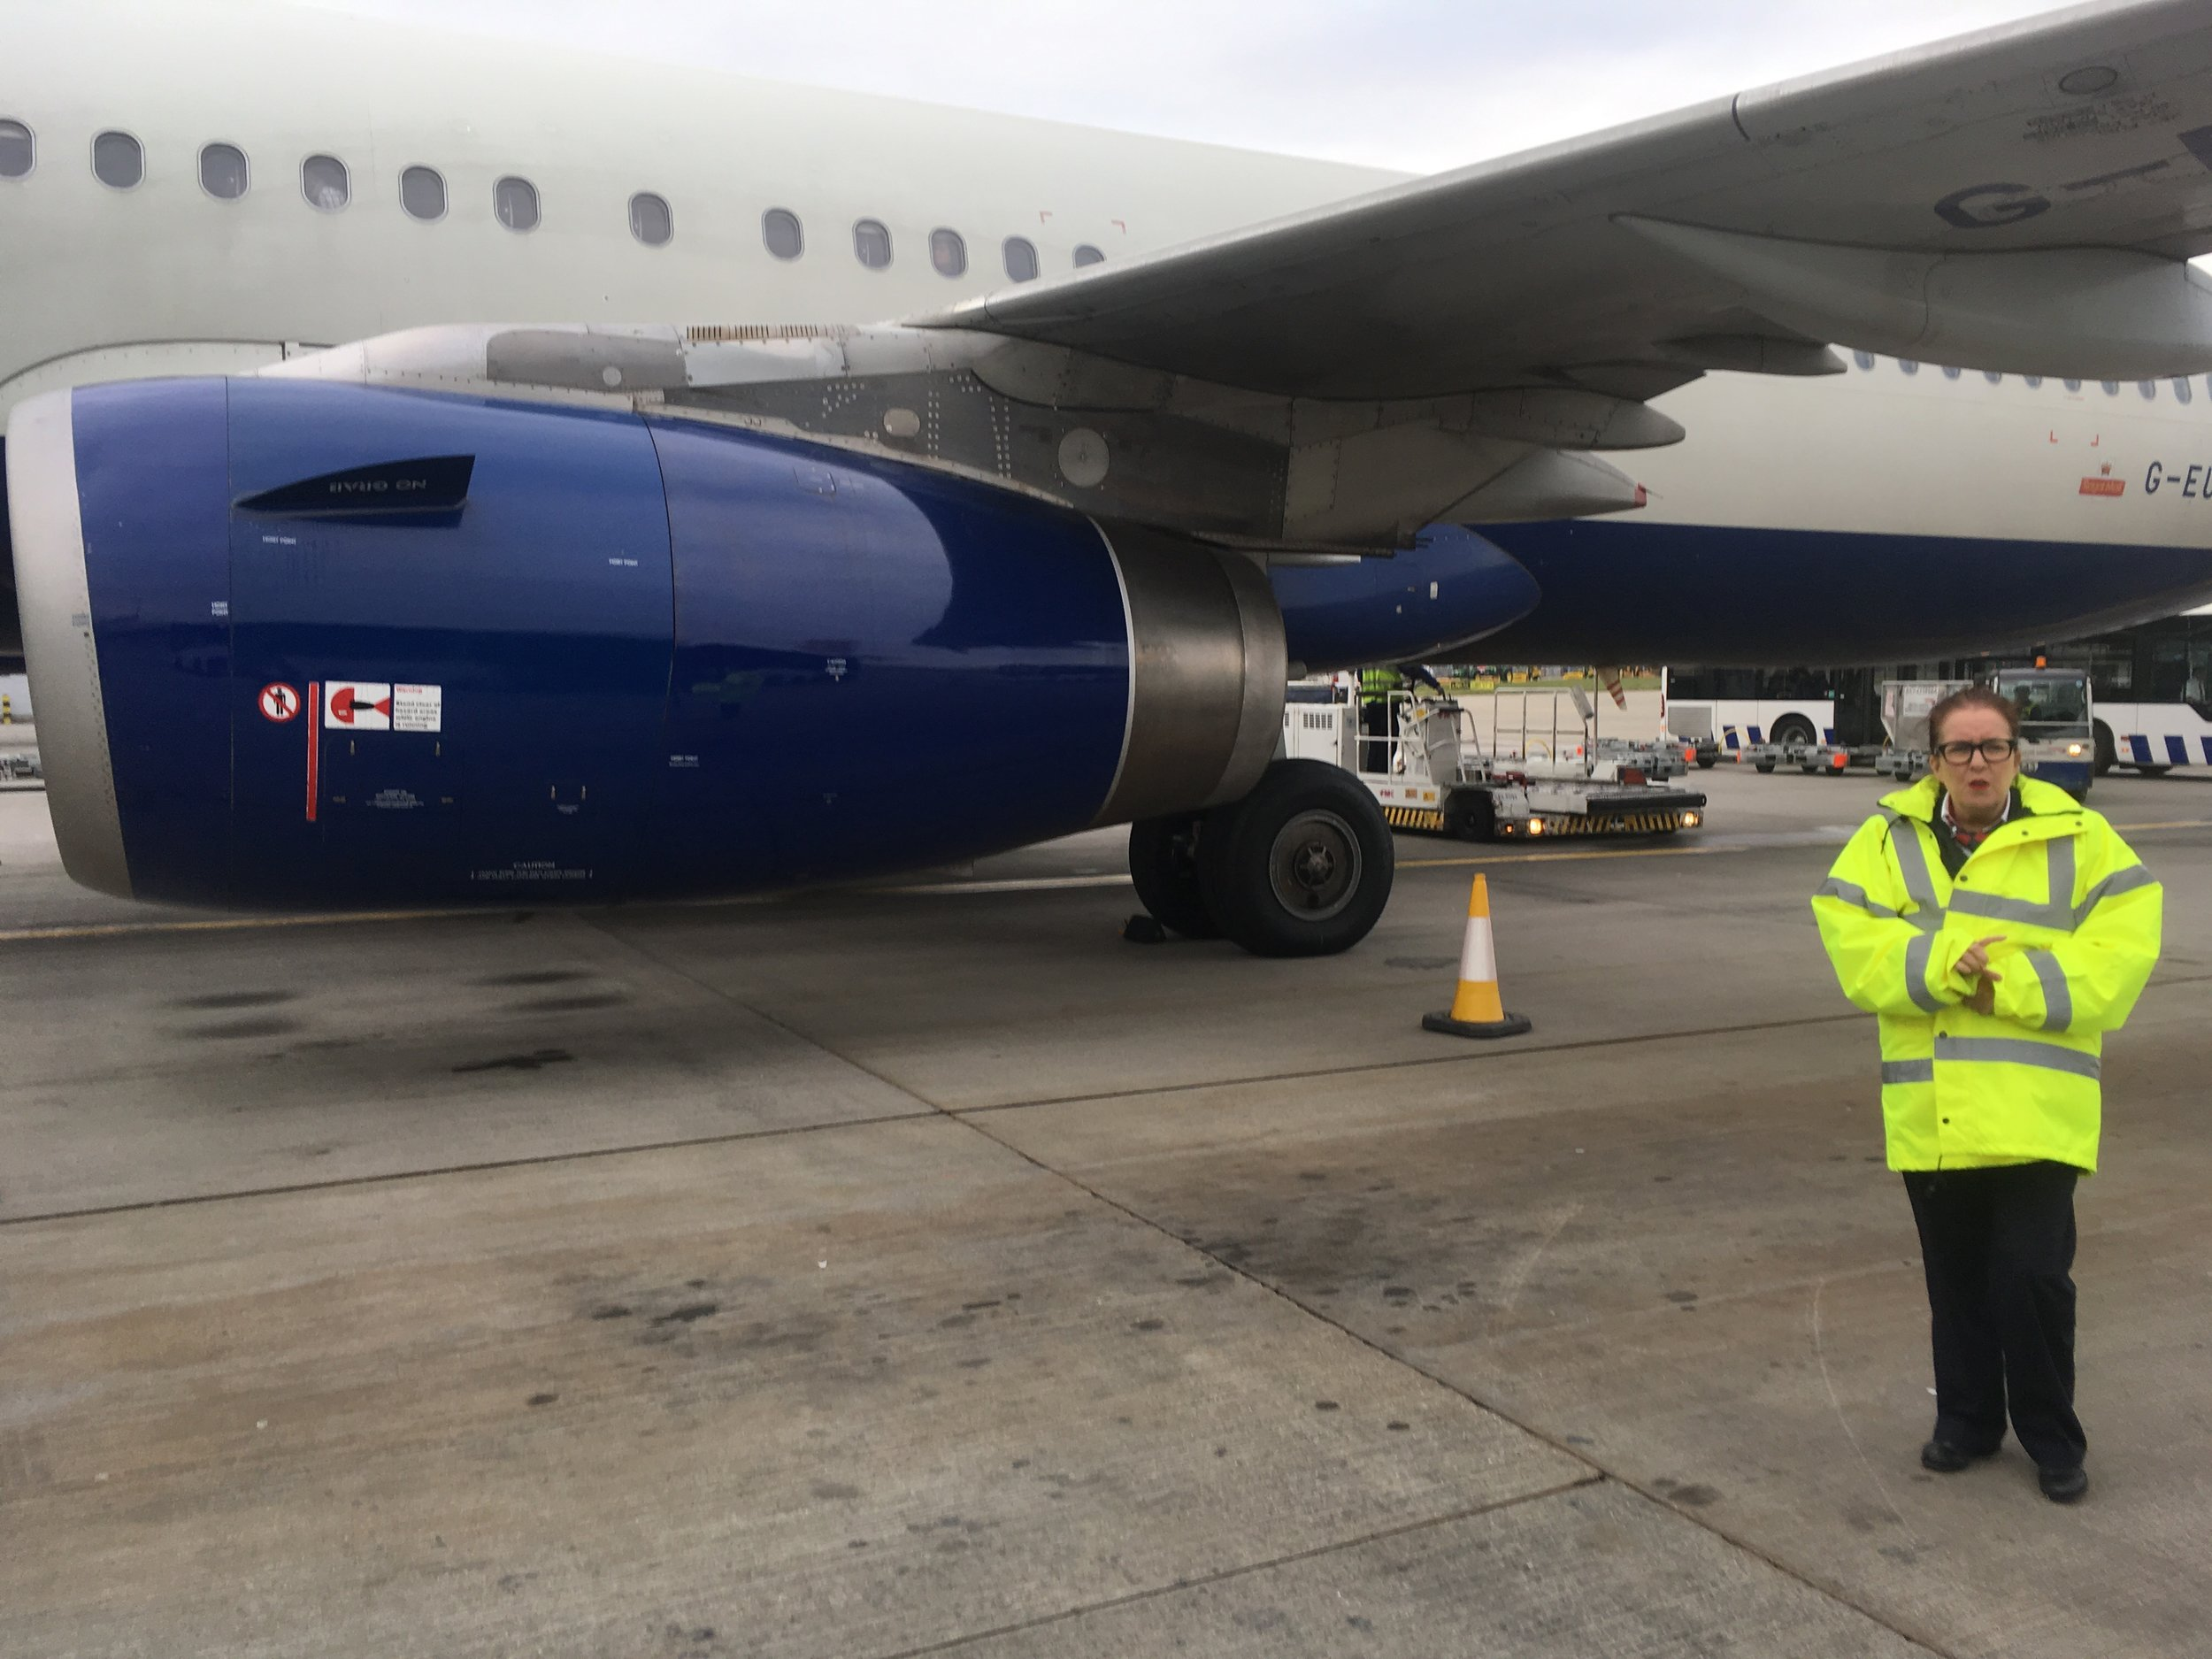 BA aircraft arrived at a domestic gate, requiring bus transportation to an international gate.